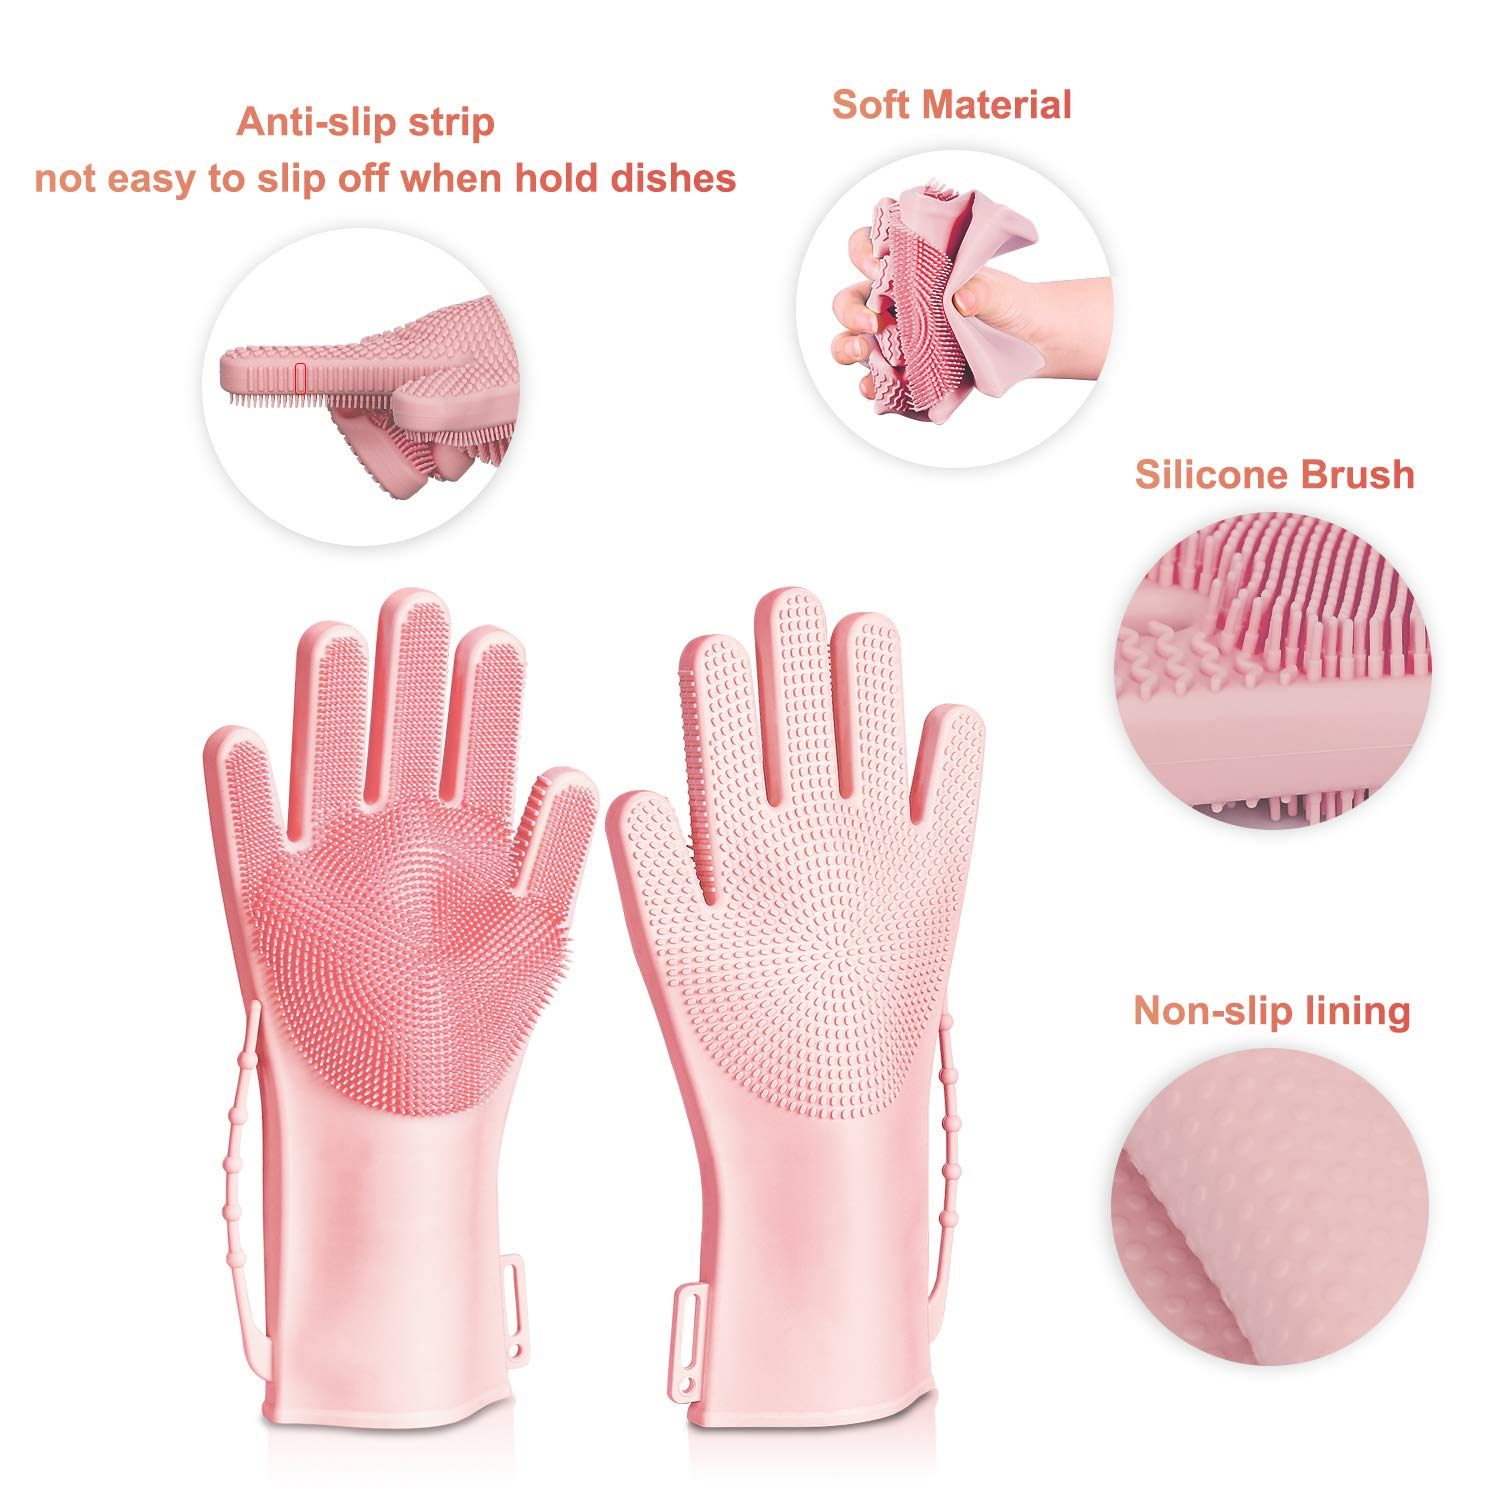 Reusable Heat Resistant Sponge Brush Gloves Car for Kitchen Magic Silicone Cleaning Gloves Bathroom and Pet VACNITE Washing Up Glove Dishwashing Scrubber with Bristles Non-Slip Cuff Strap Green